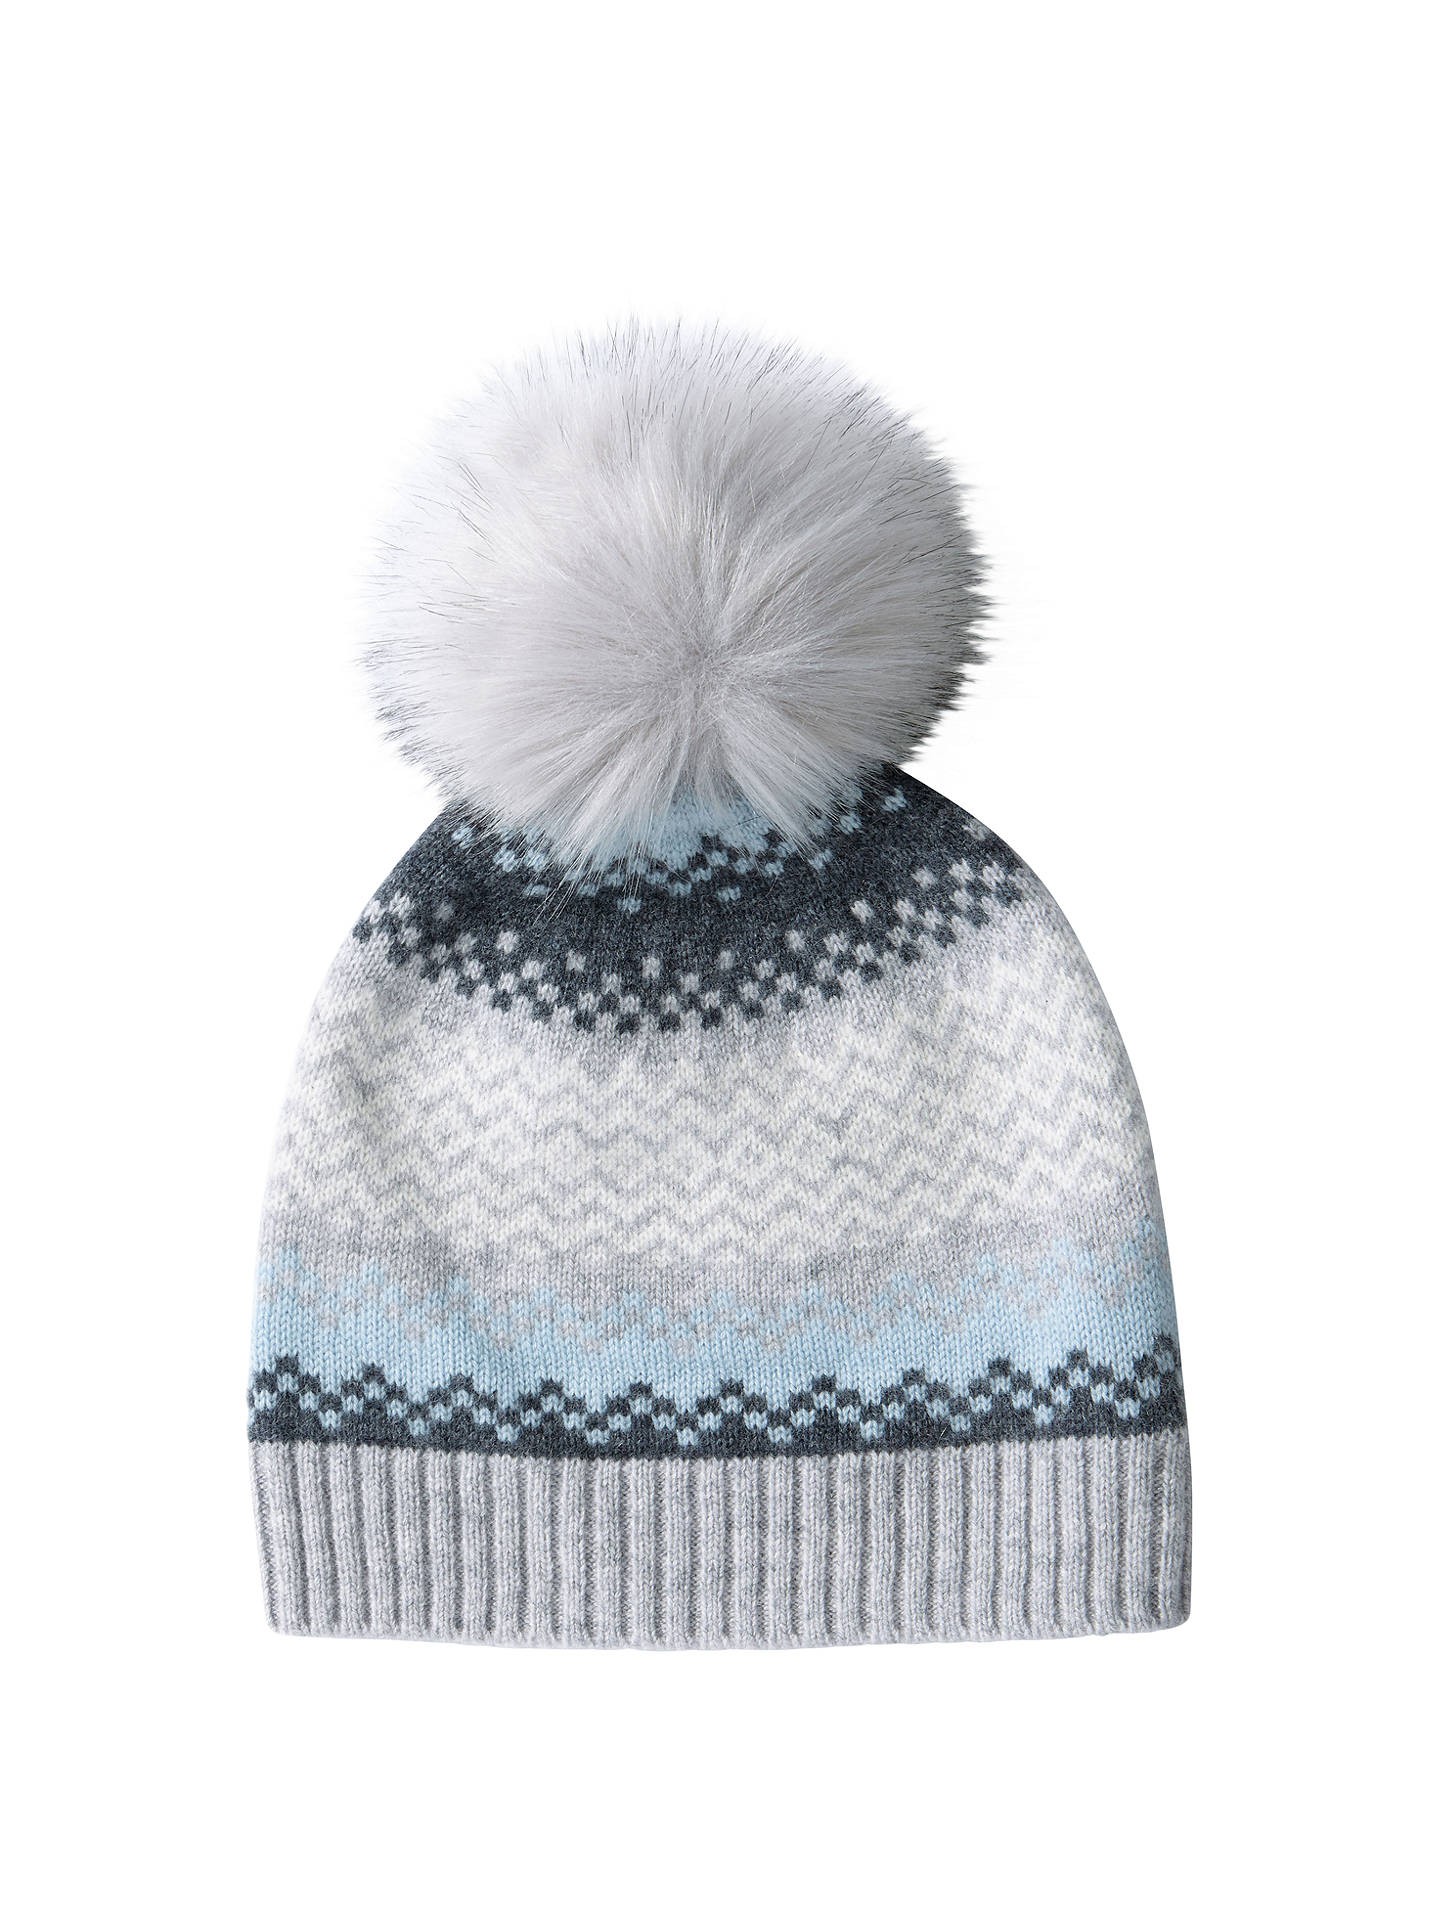 8a3d7a1e3d8 Buy Pure Collection Fair Isle Cashmere Pom Pom Hat